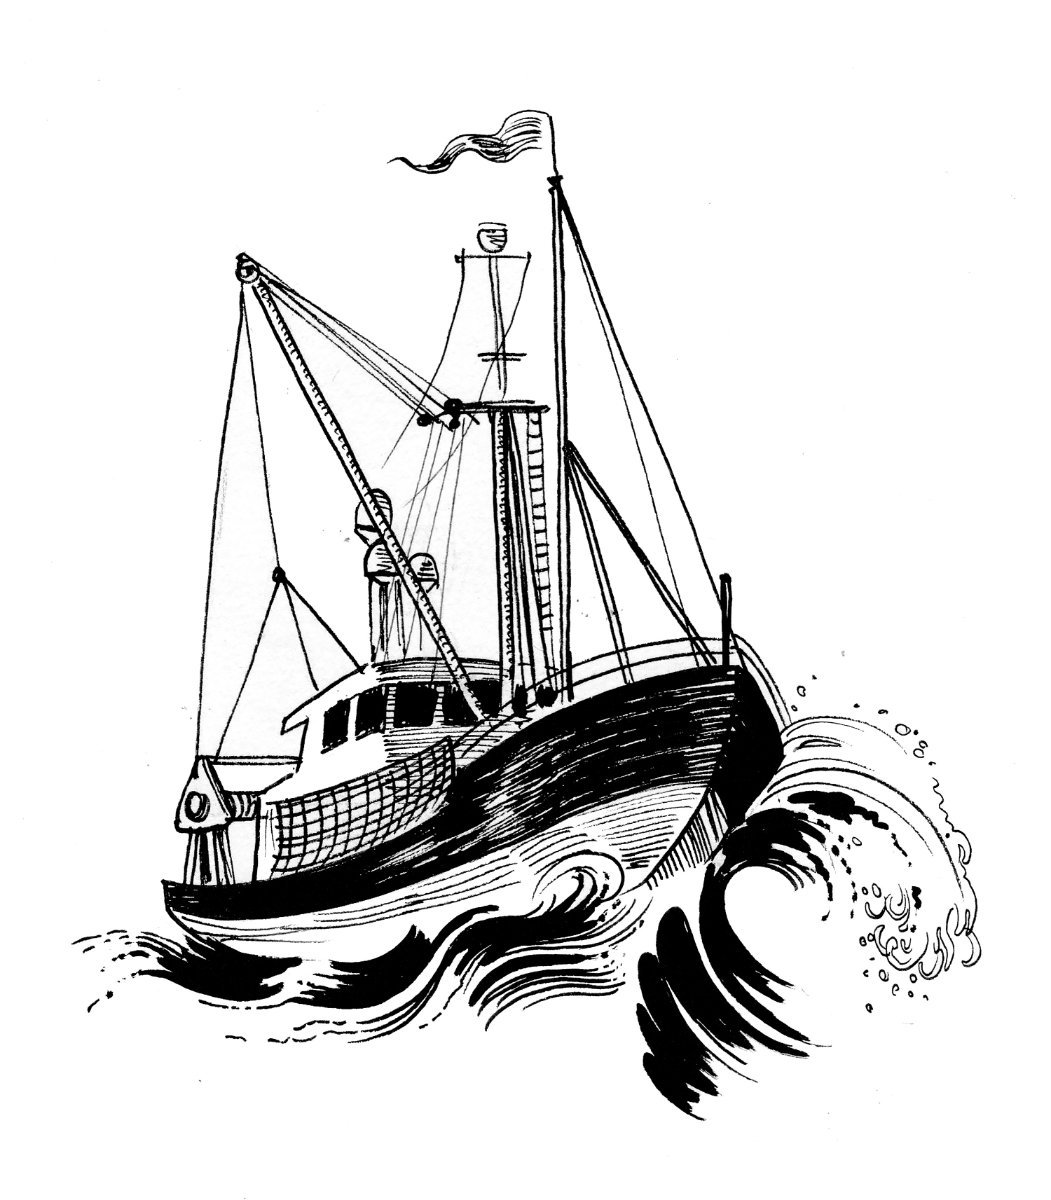 For Sale Primary commercial fishing licence $13,000.00 + GST Neg